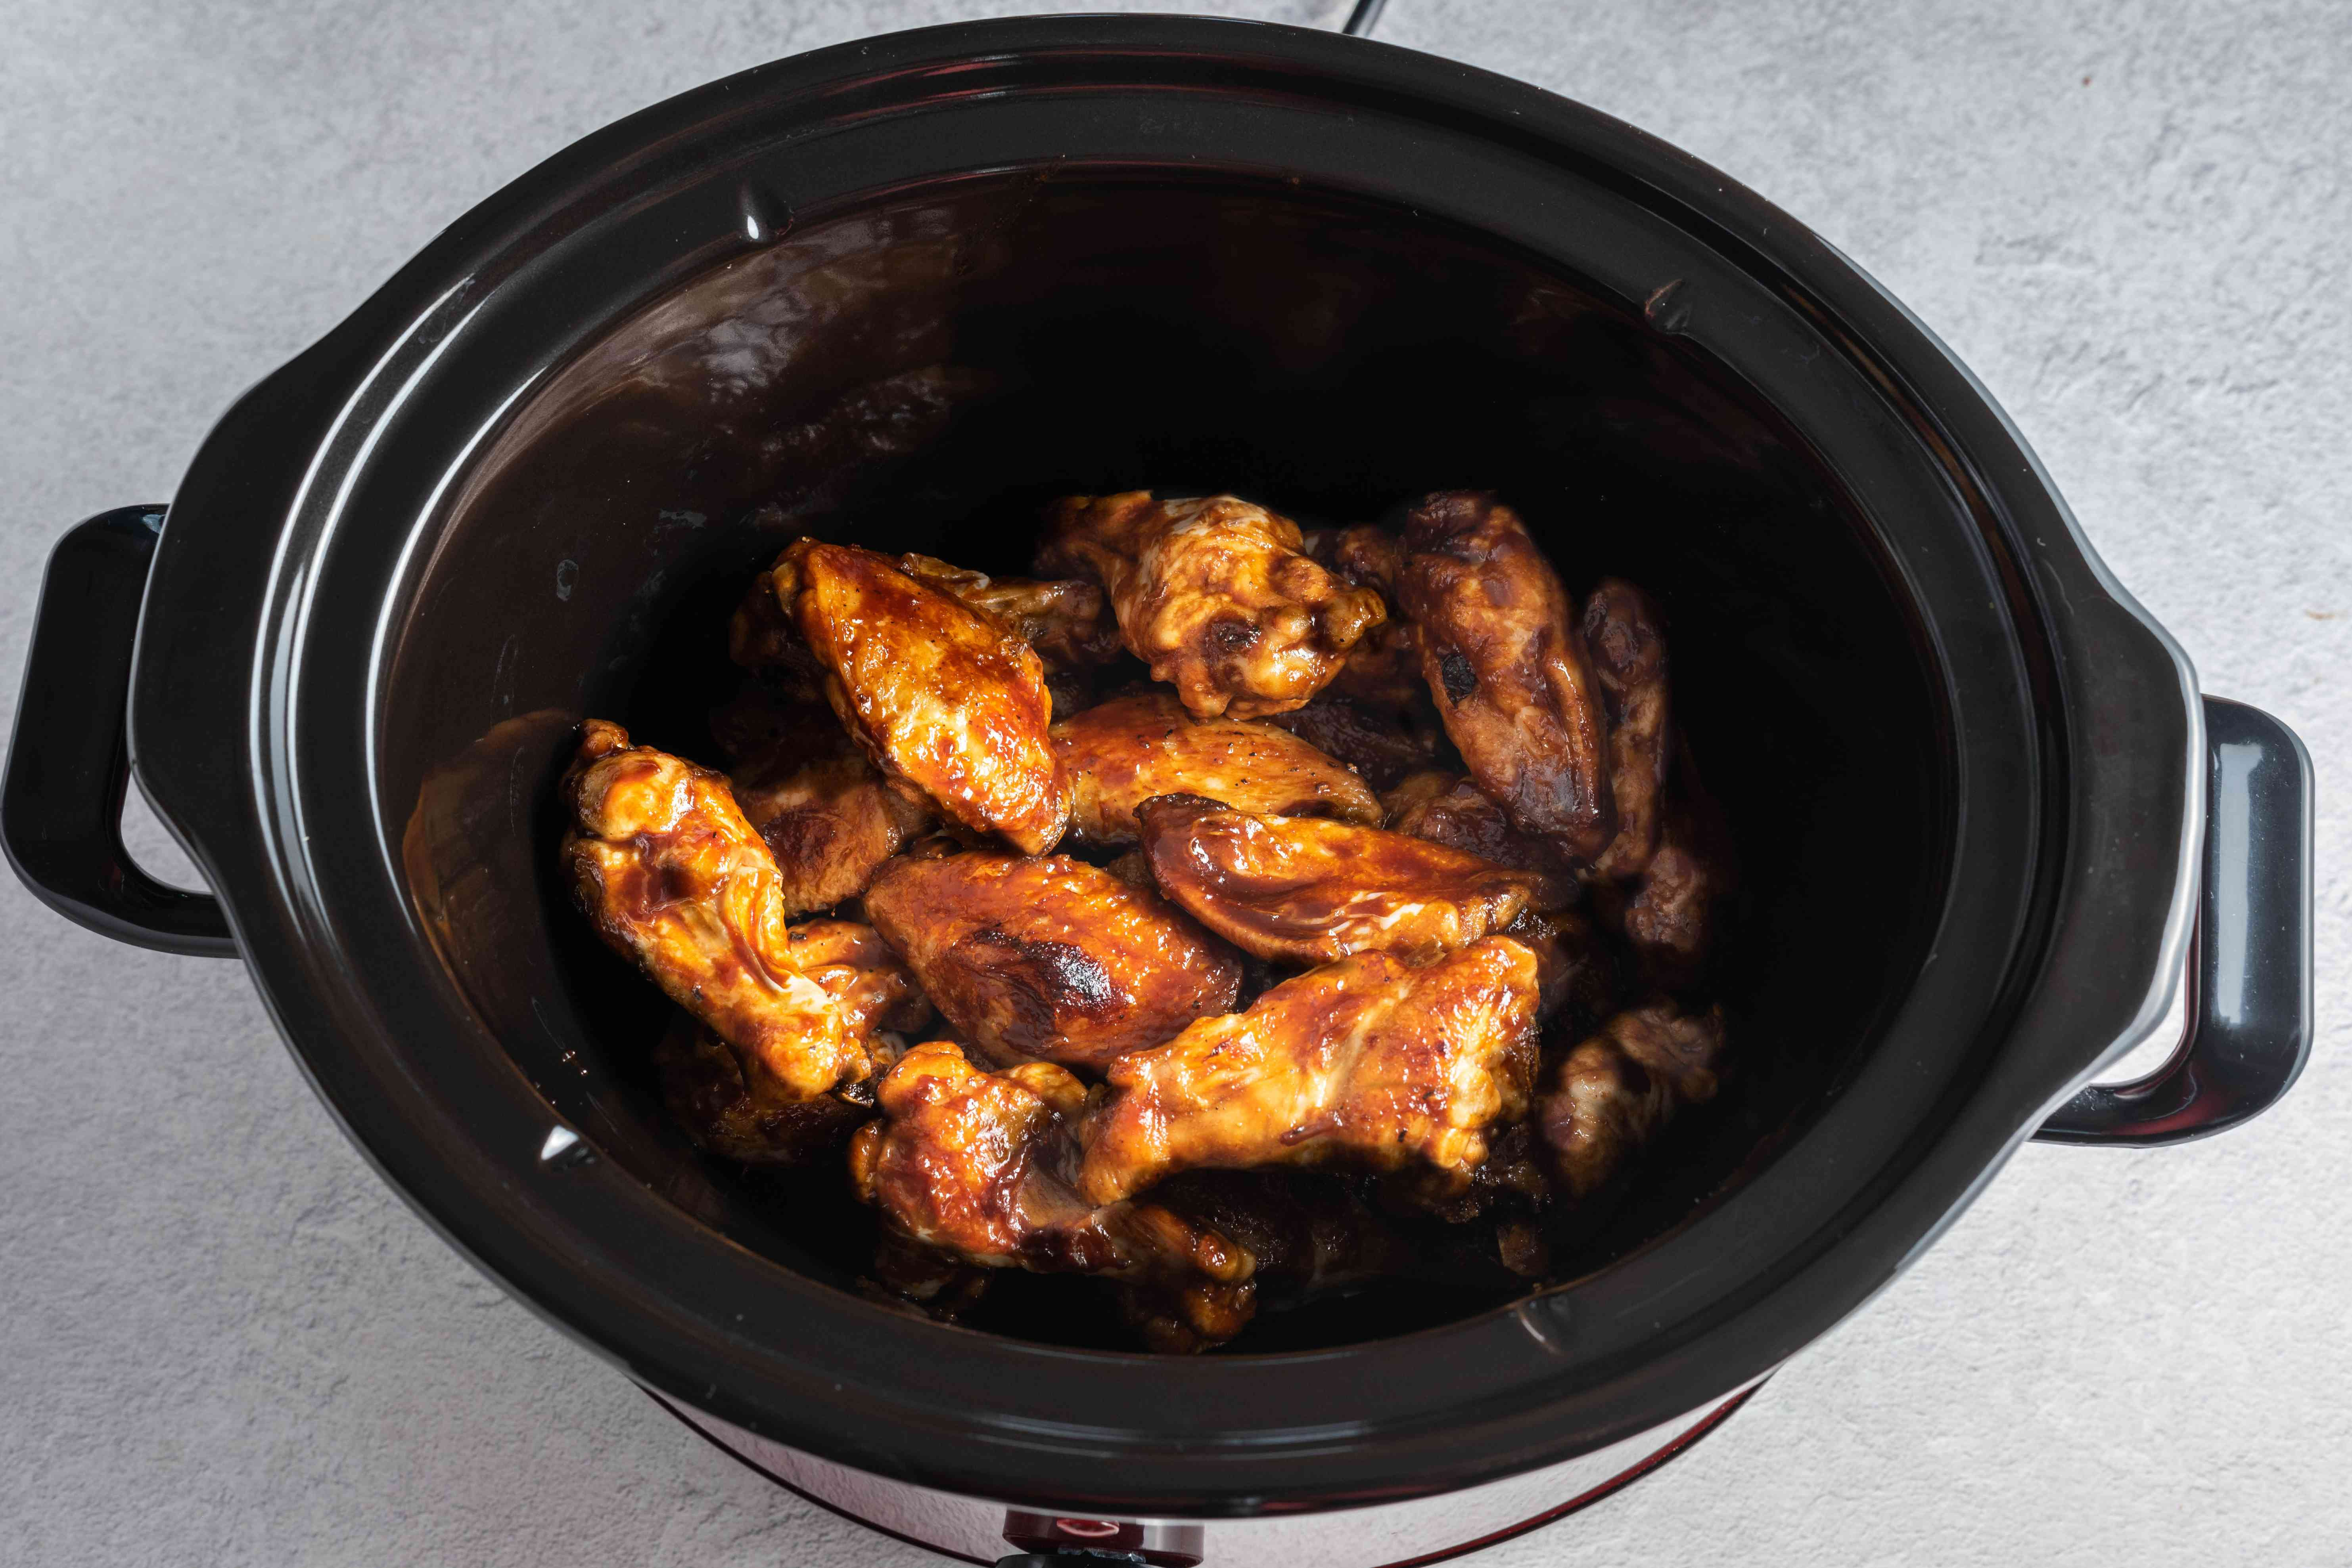 BBQ chicken wings in slow cooker